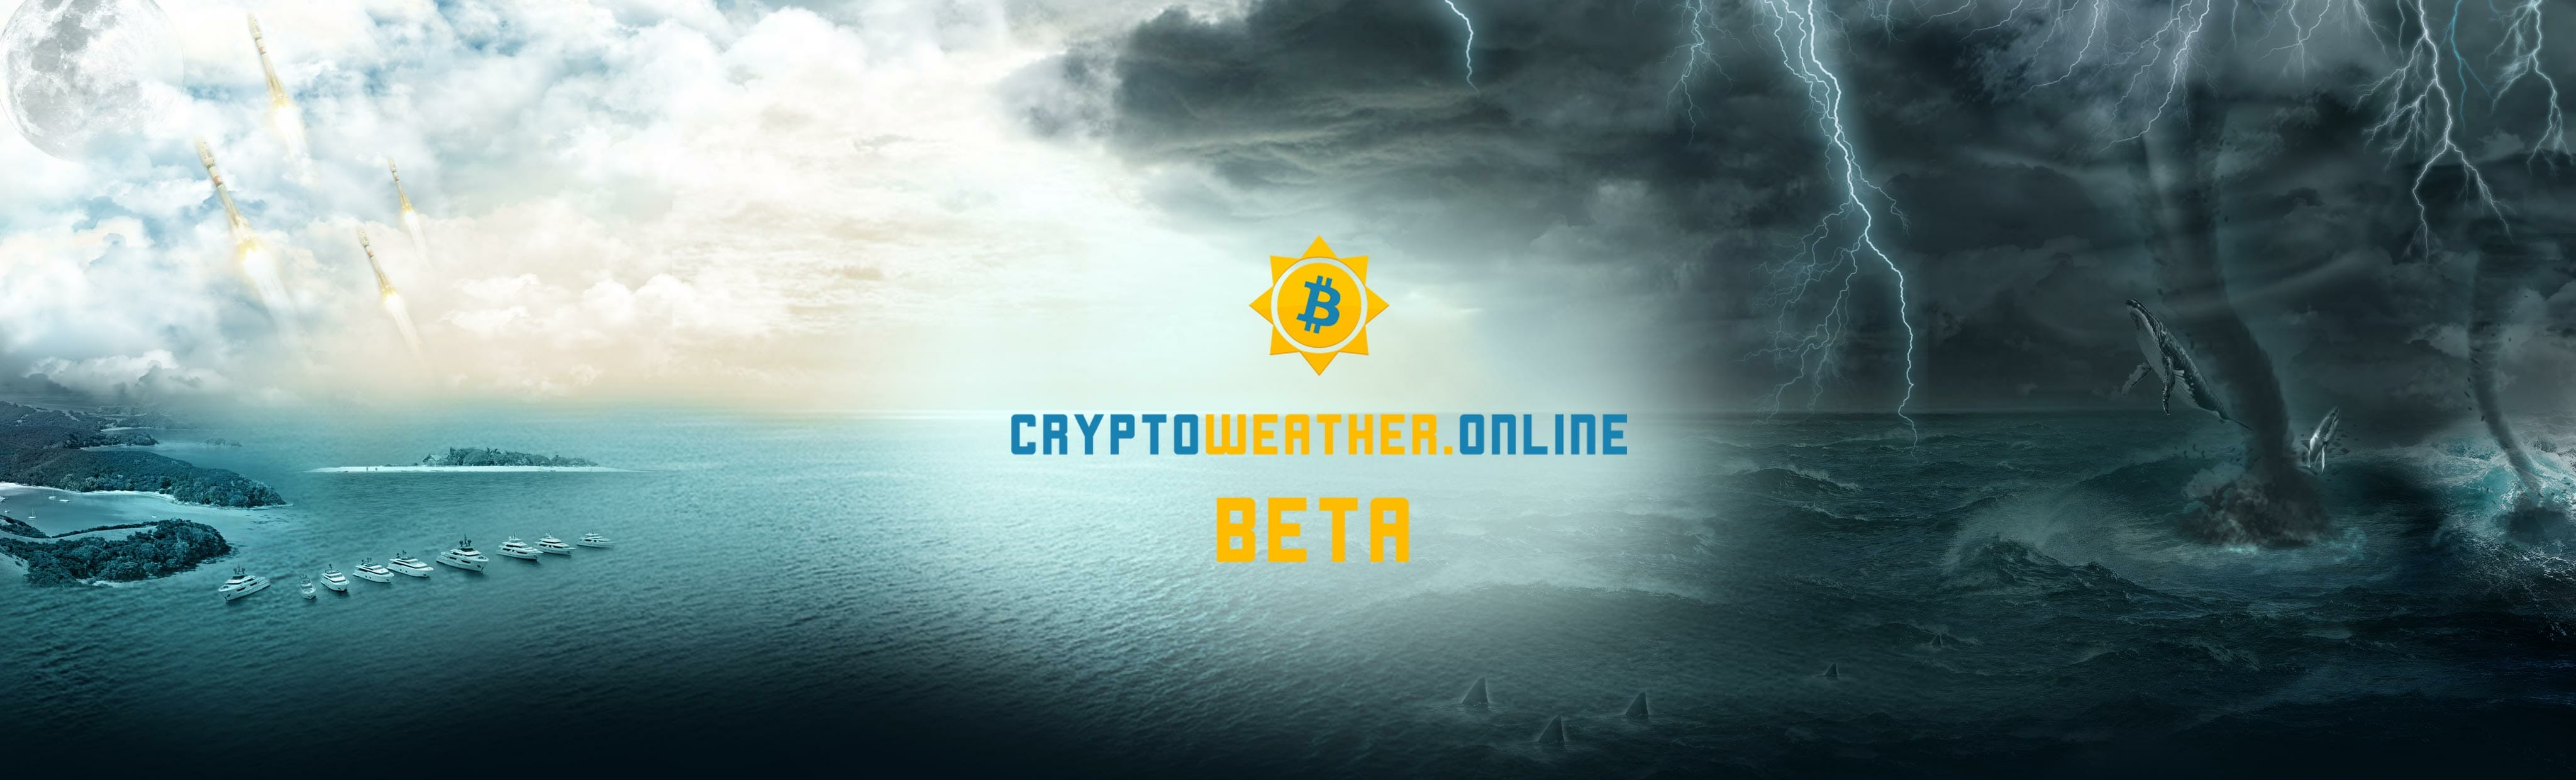 CryptoWeather.Online – The Ultimate Crypto App for Keeping Tabs on the Latest Crypto Trends